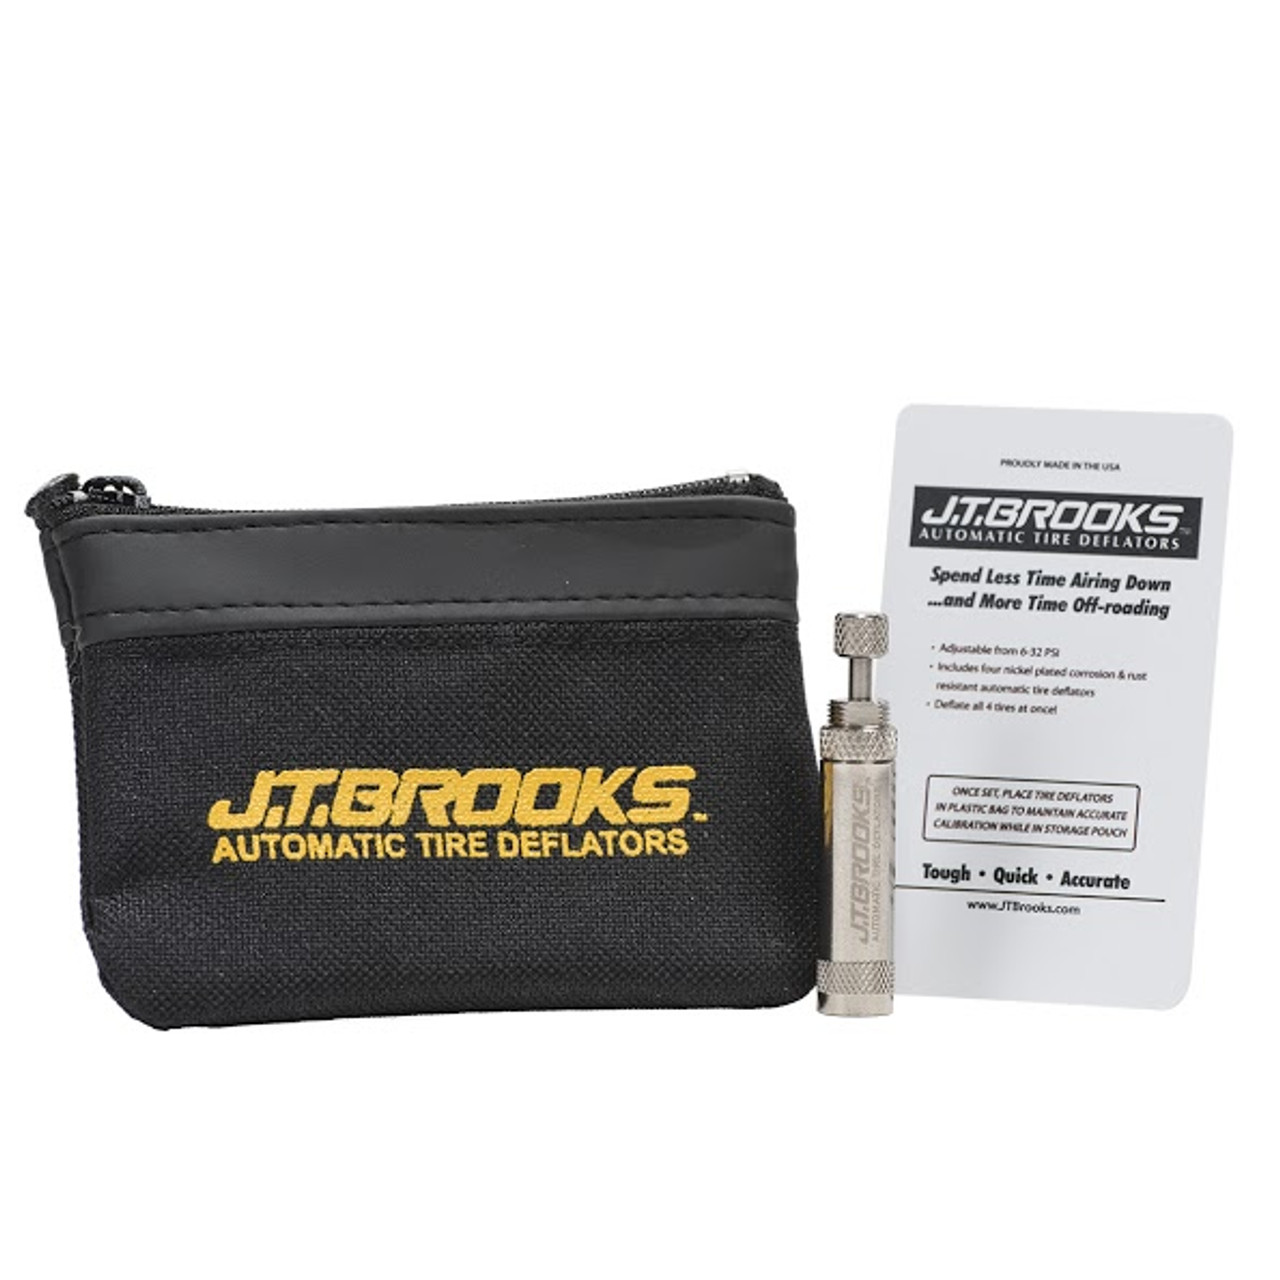 JT Brooks Single Automatic Tire Deflator and Carrying Case